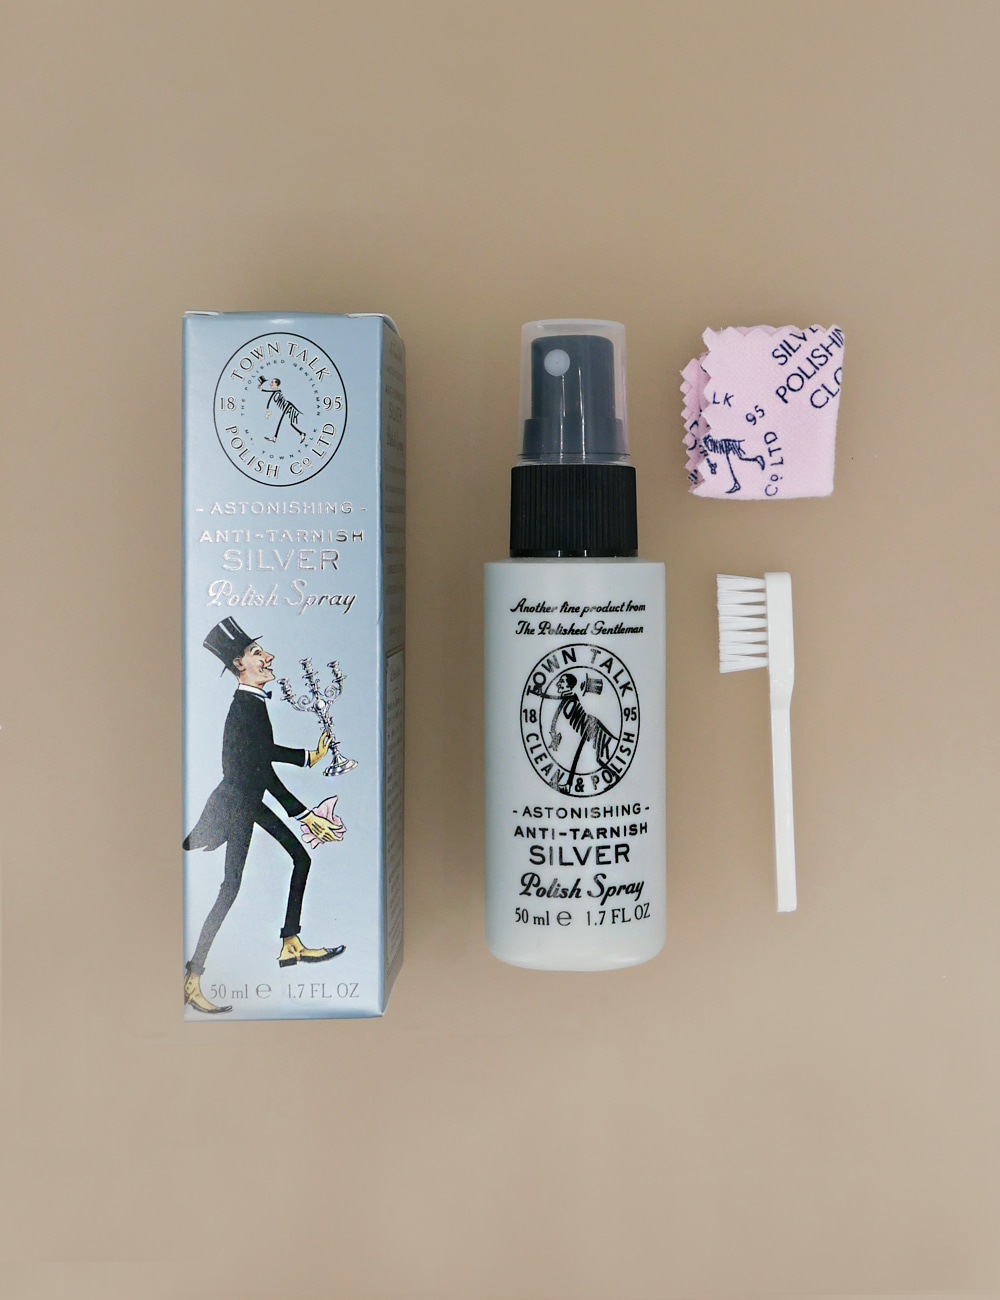 Anti-Tarnish Silver Polishing Spray